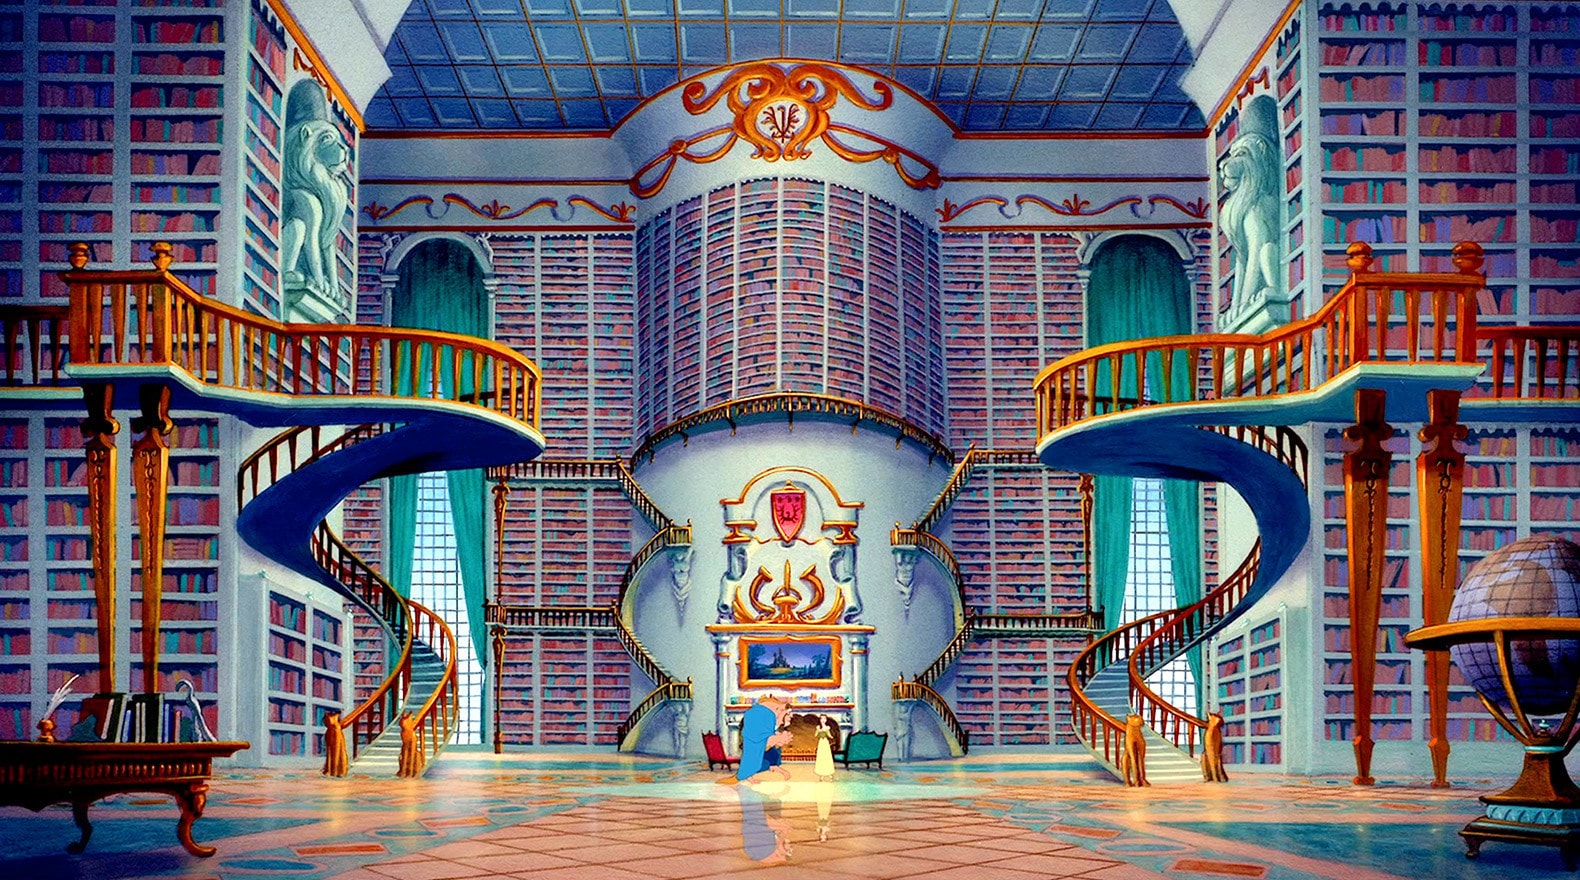 Beast knows the best gift to give Belle is a room full of books.